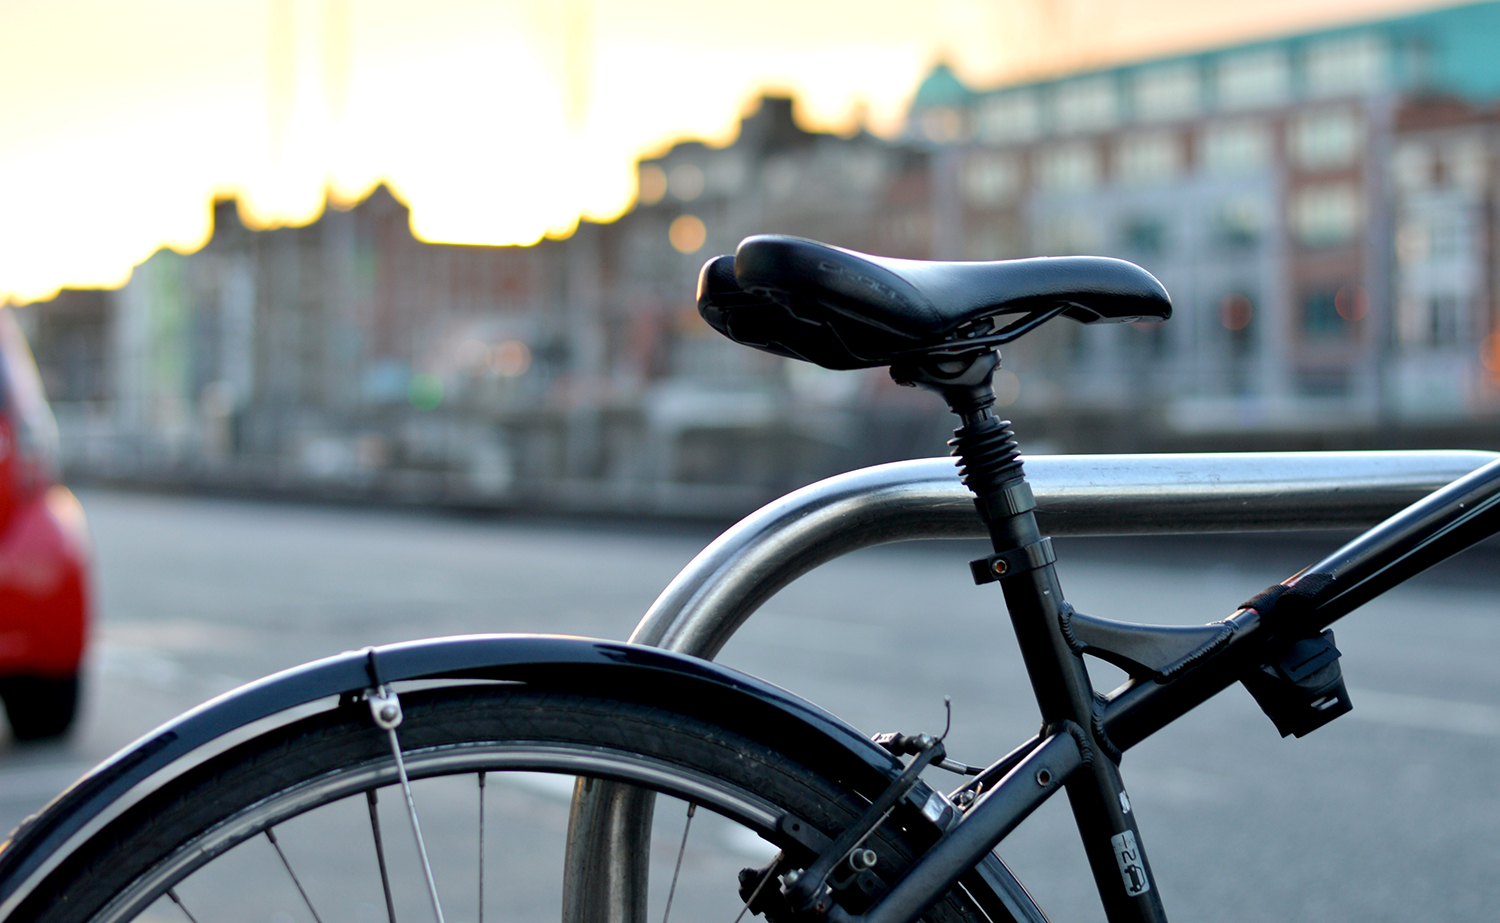 Black bicycle with city background